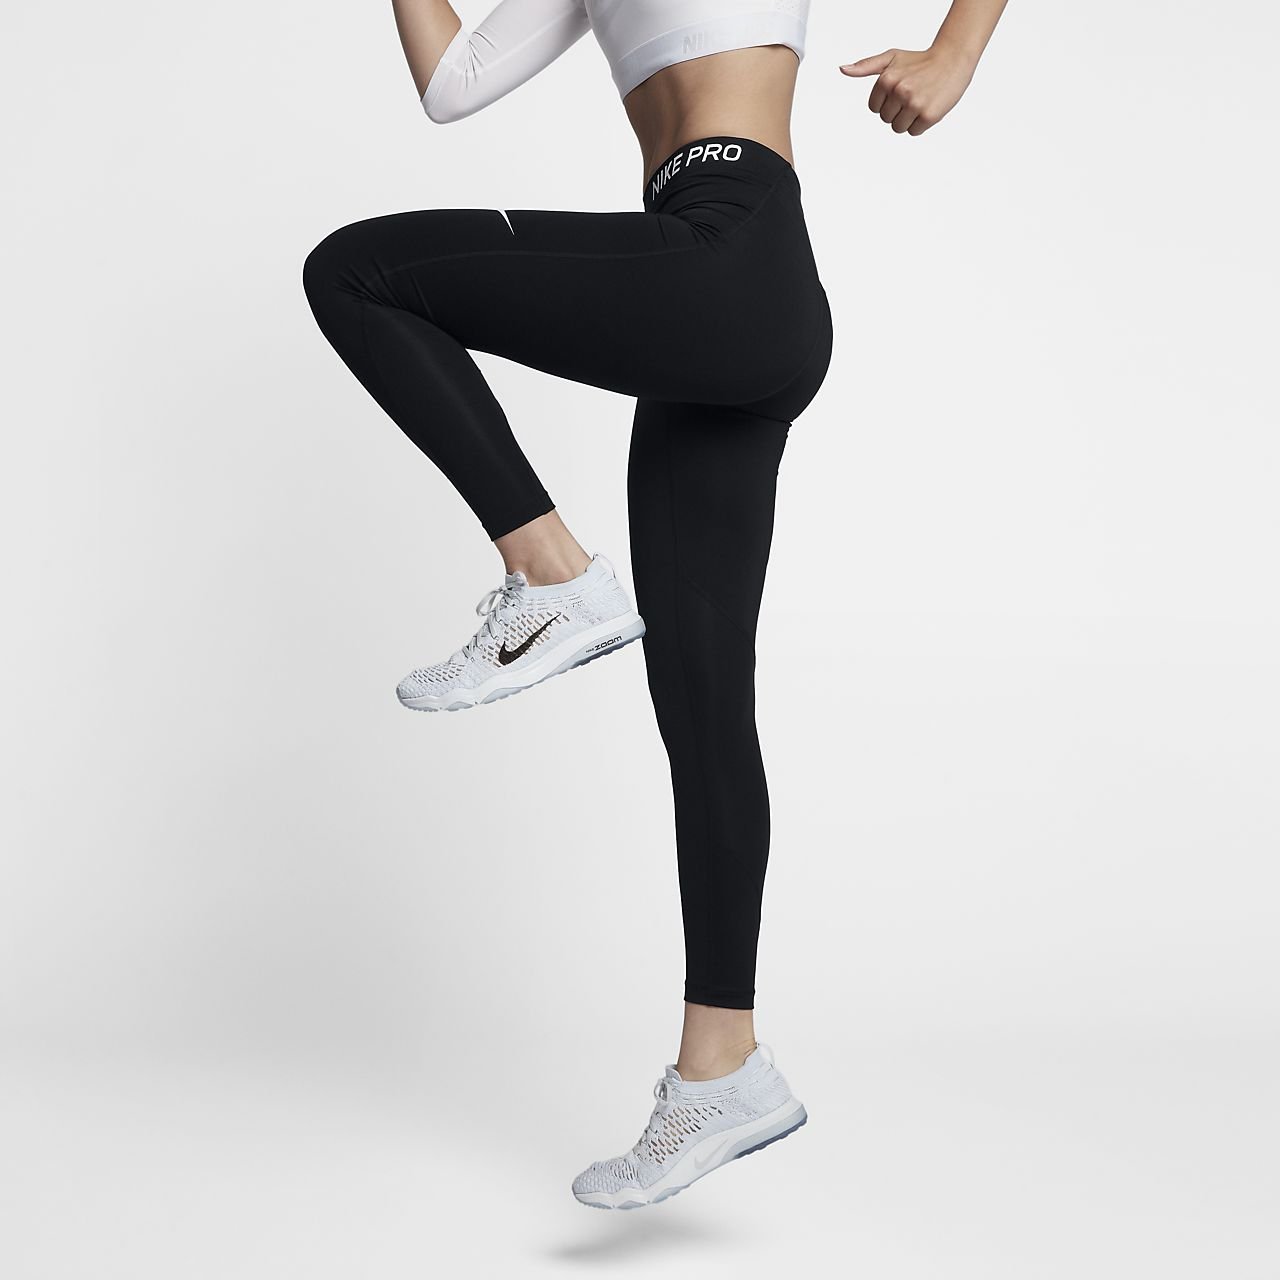 c91b81a19 Nike Pro Women's Mid-Rise Training Tights. Nike.com